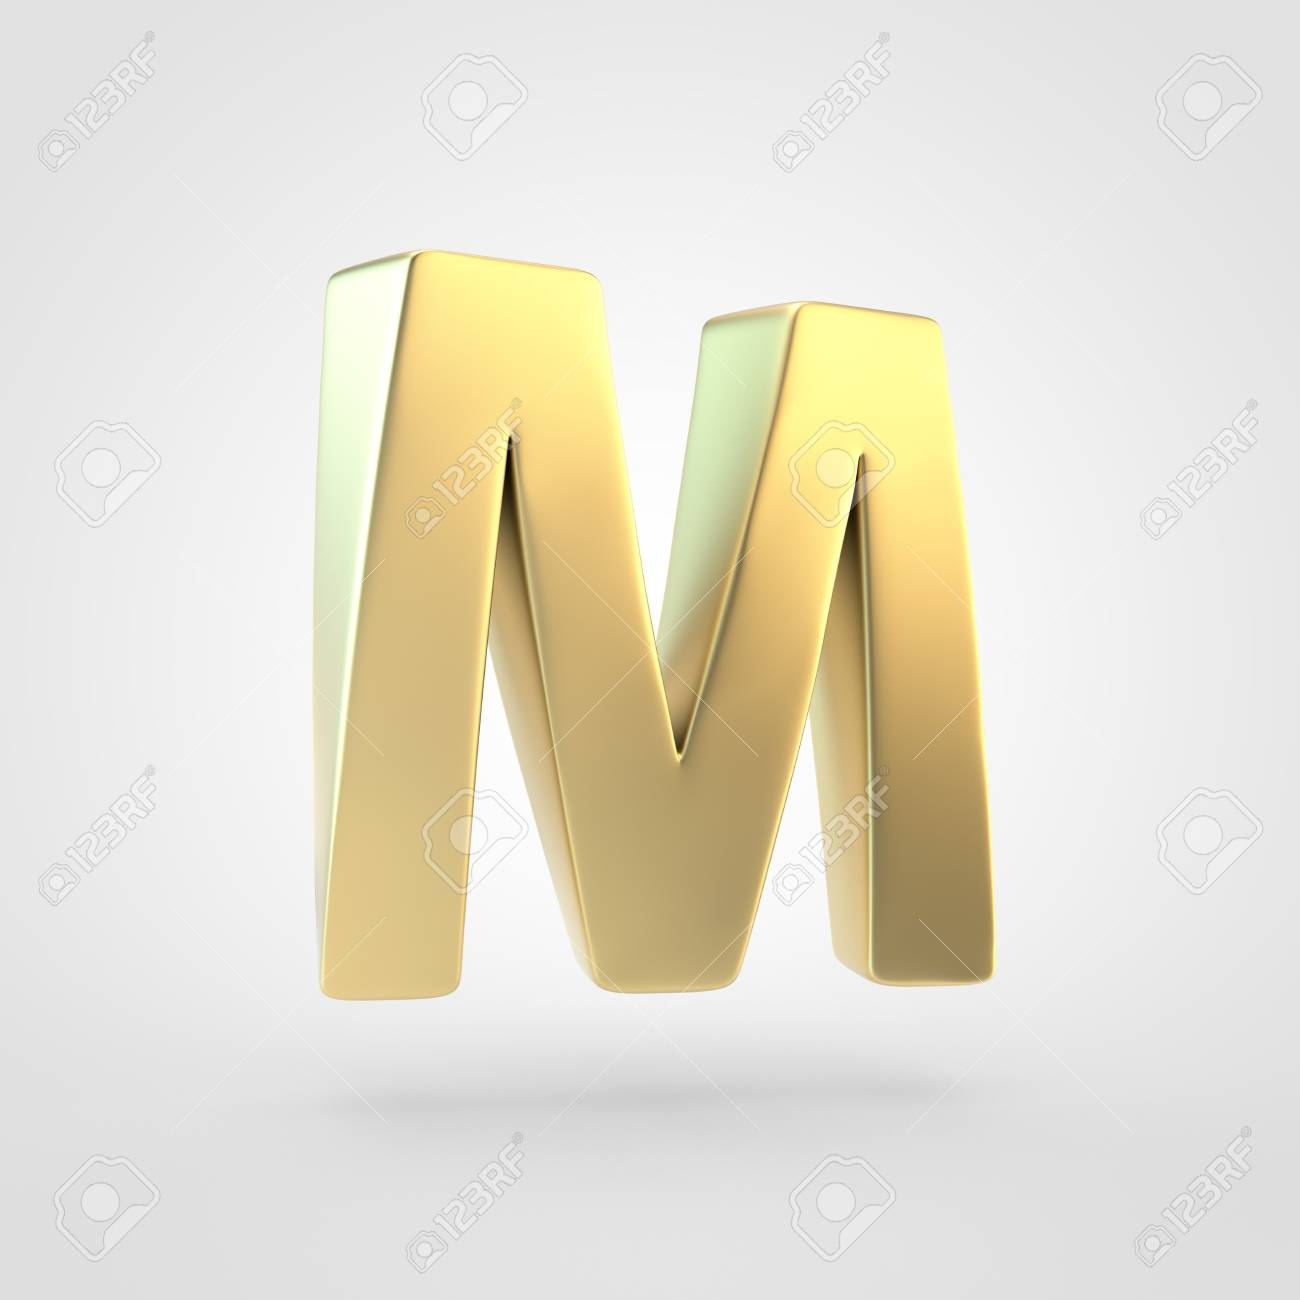 Golden Letter M Uppercase 3D Rendering Of Matted Golden Font 1300x1300